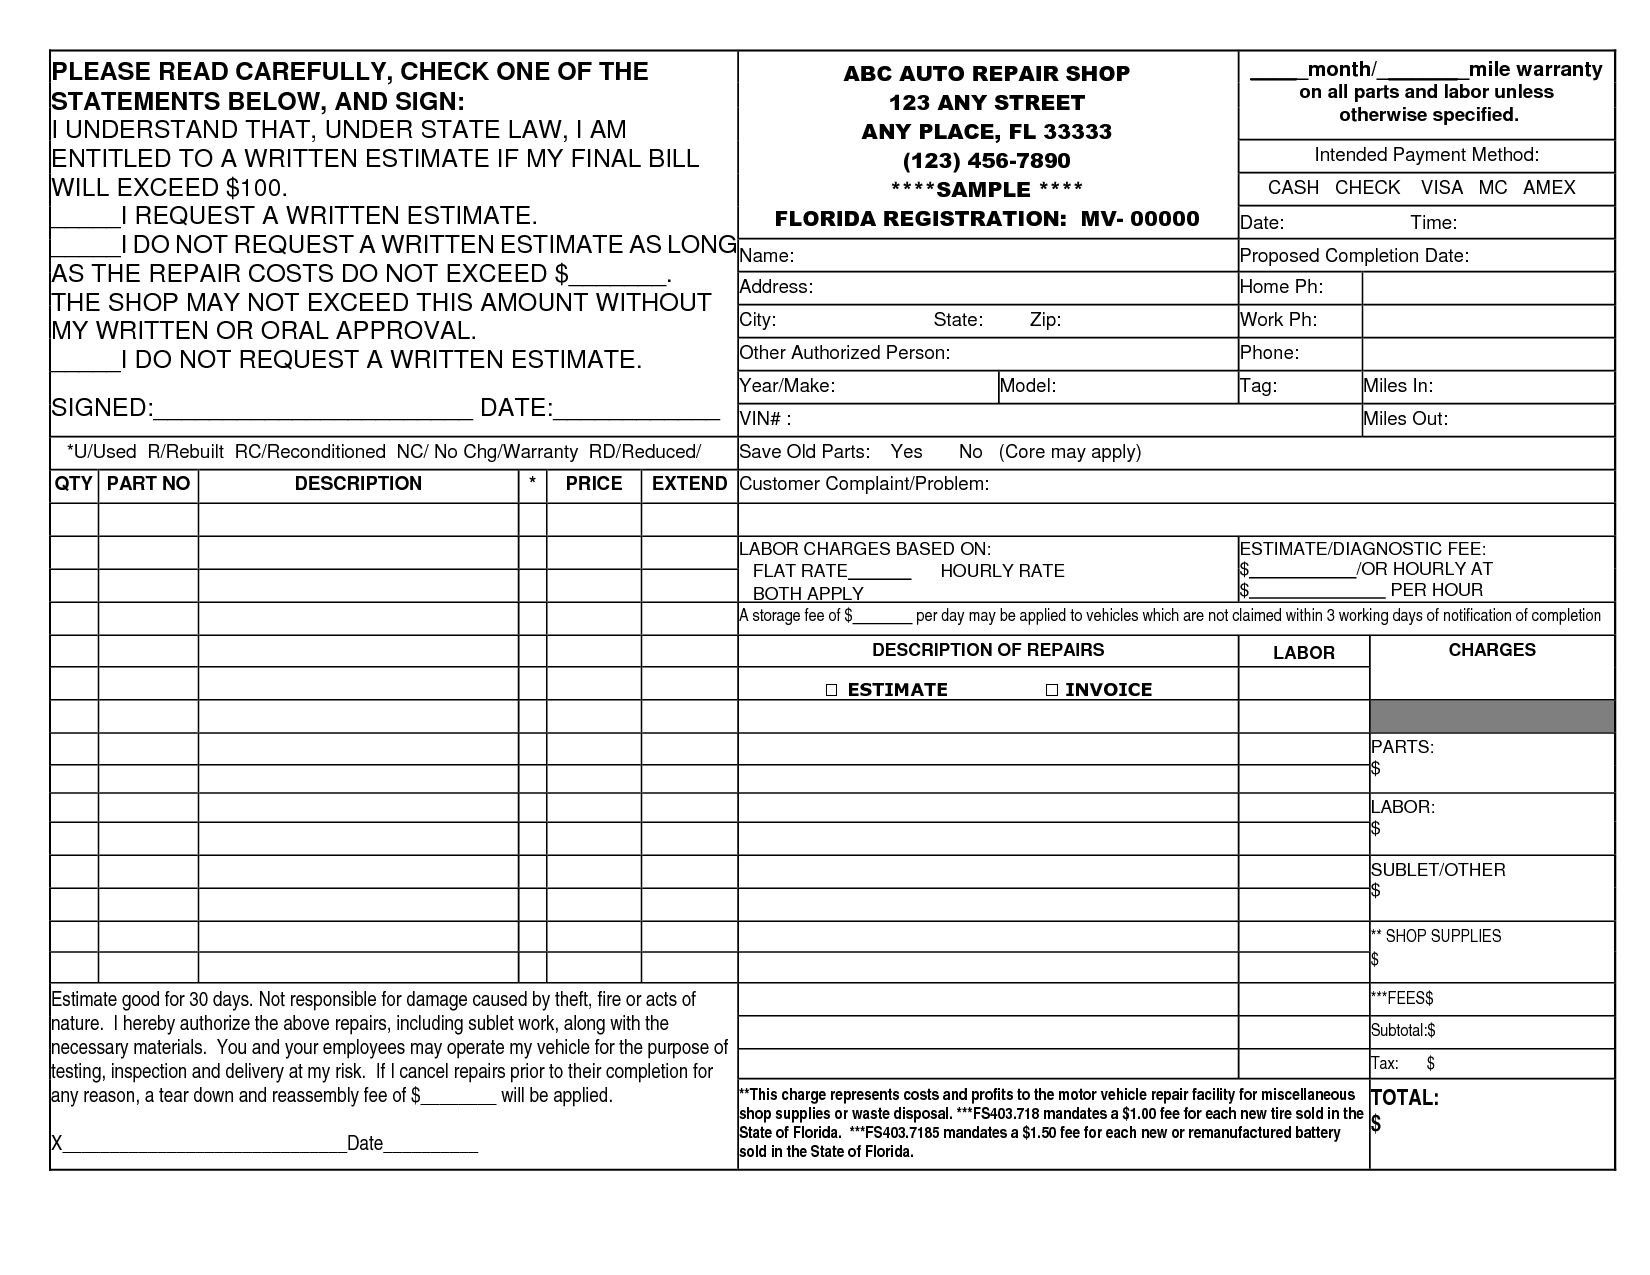 Best Photos Of Auto Repair Invoice Template Printable Auto Body - Free auto repair invoice form create online store